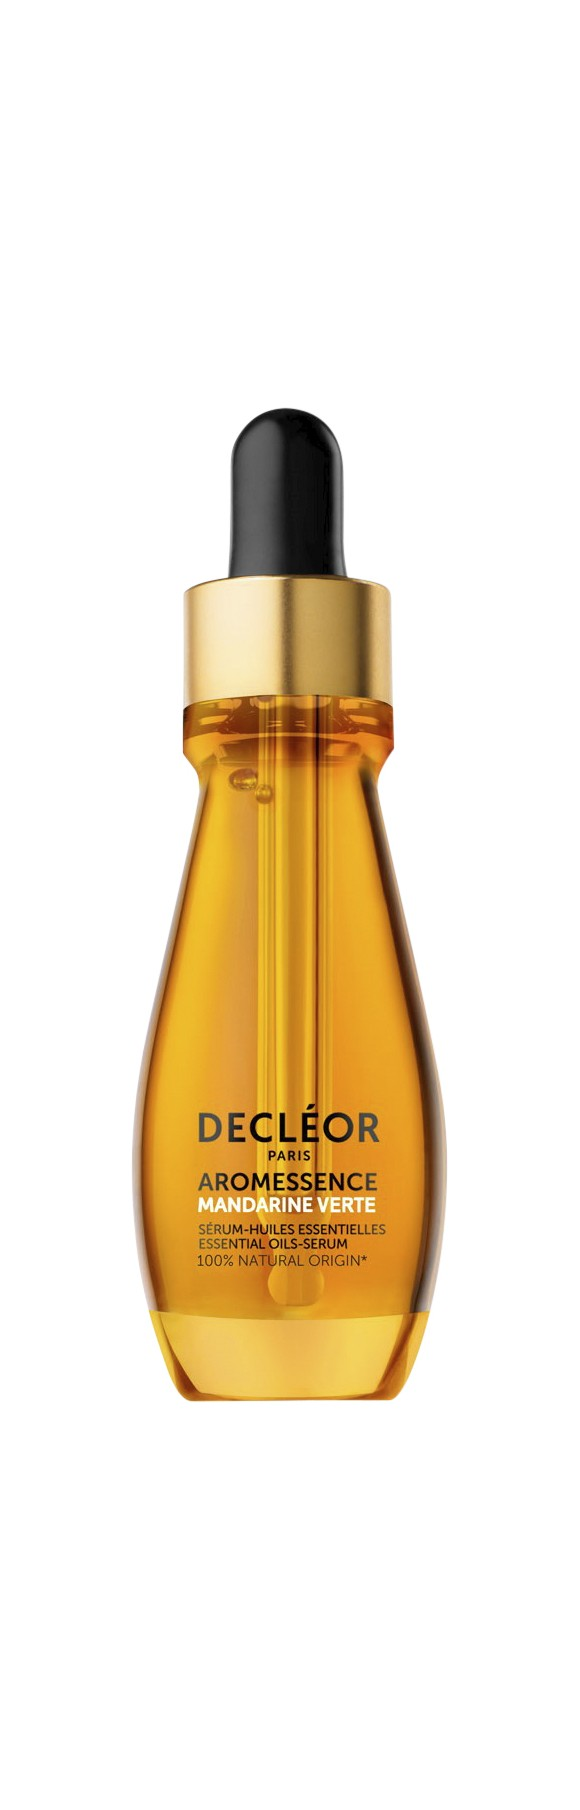 Decleor - Green Mandarin Aromessence Serum 15 ml